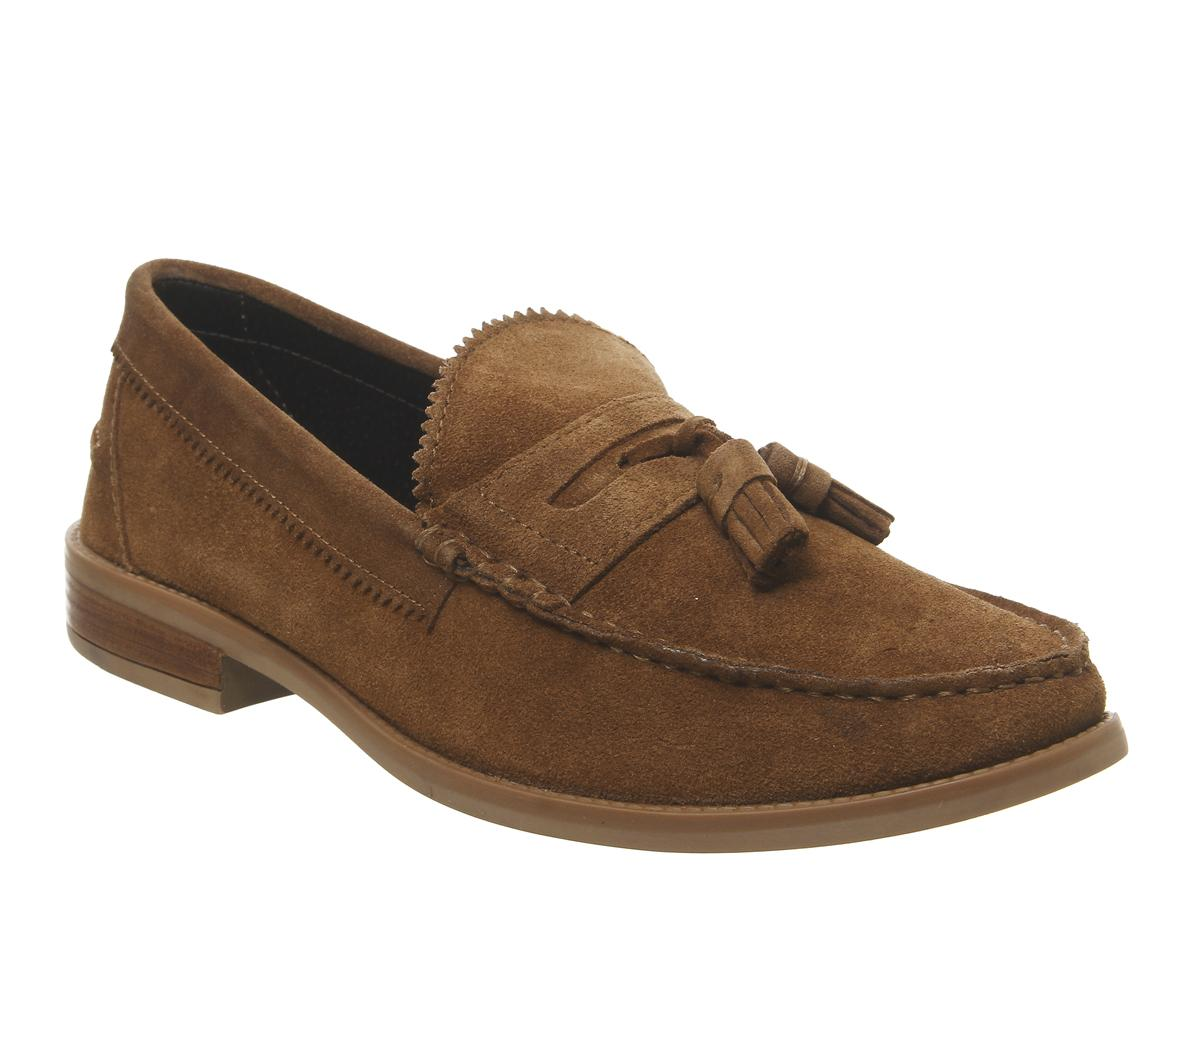 Liho Tassel Loafers